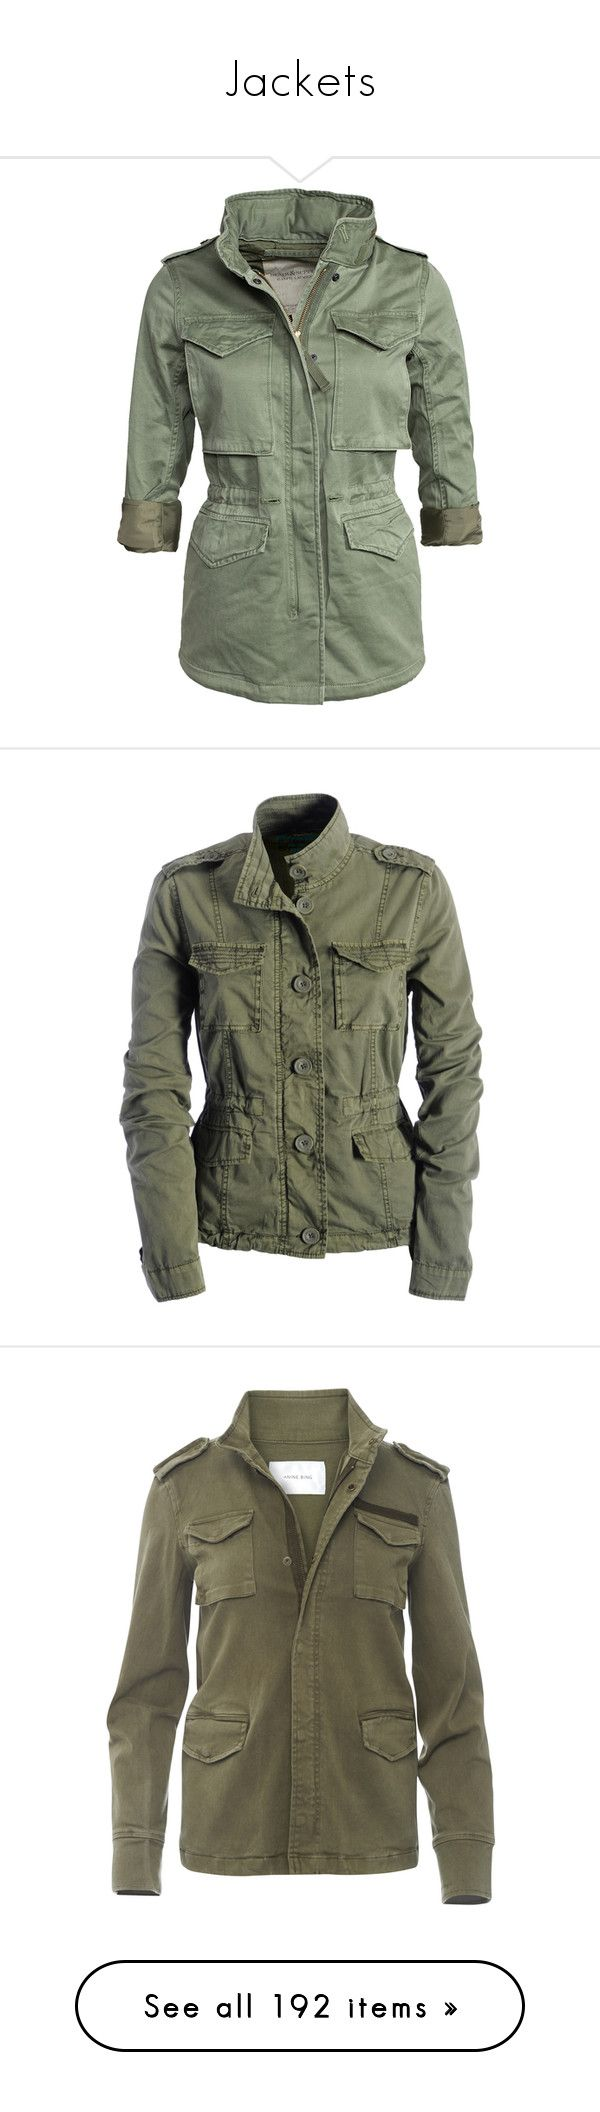 """""""Jackets"""" by mrseclipse ❤ liked on Polyvore featuring outerwear, jackets, tops, coats, army olive, womens-fashion, army green military jacket, army jacket, high collar jacket and olive army jacket"""